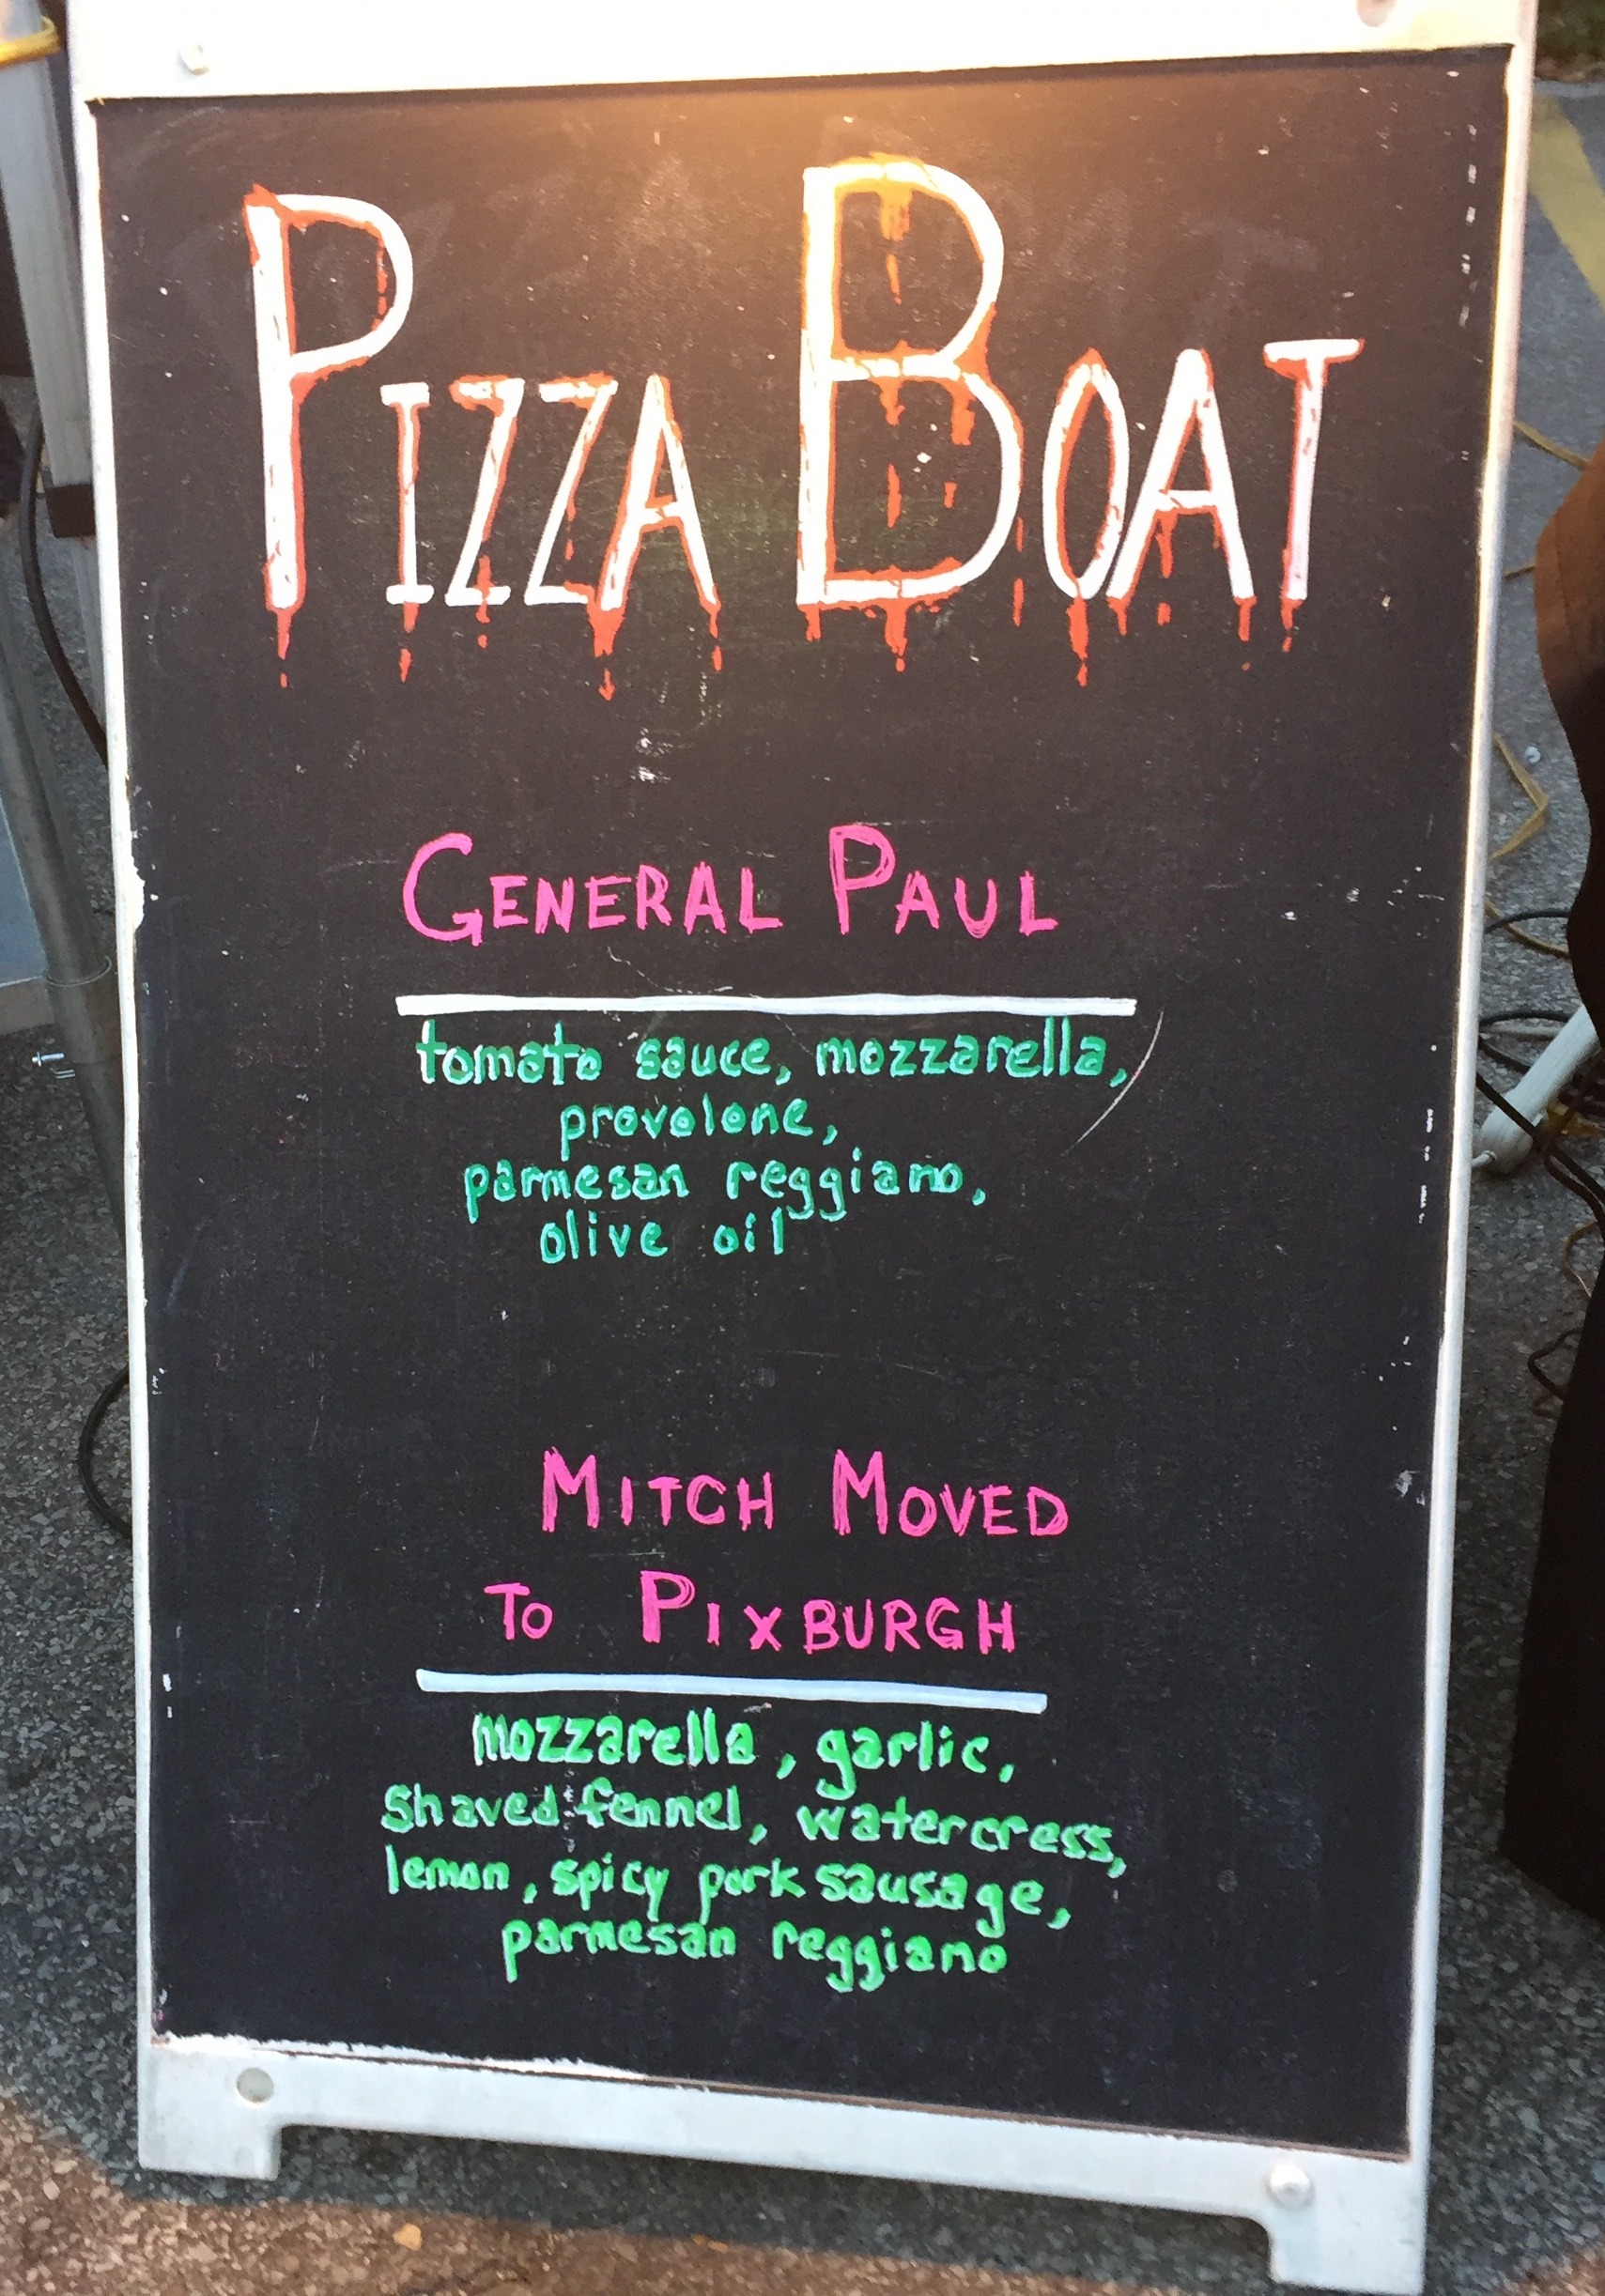 Pizza Boat's spooky (and delicious) menu. Deceptive and full of tricks at every corner.